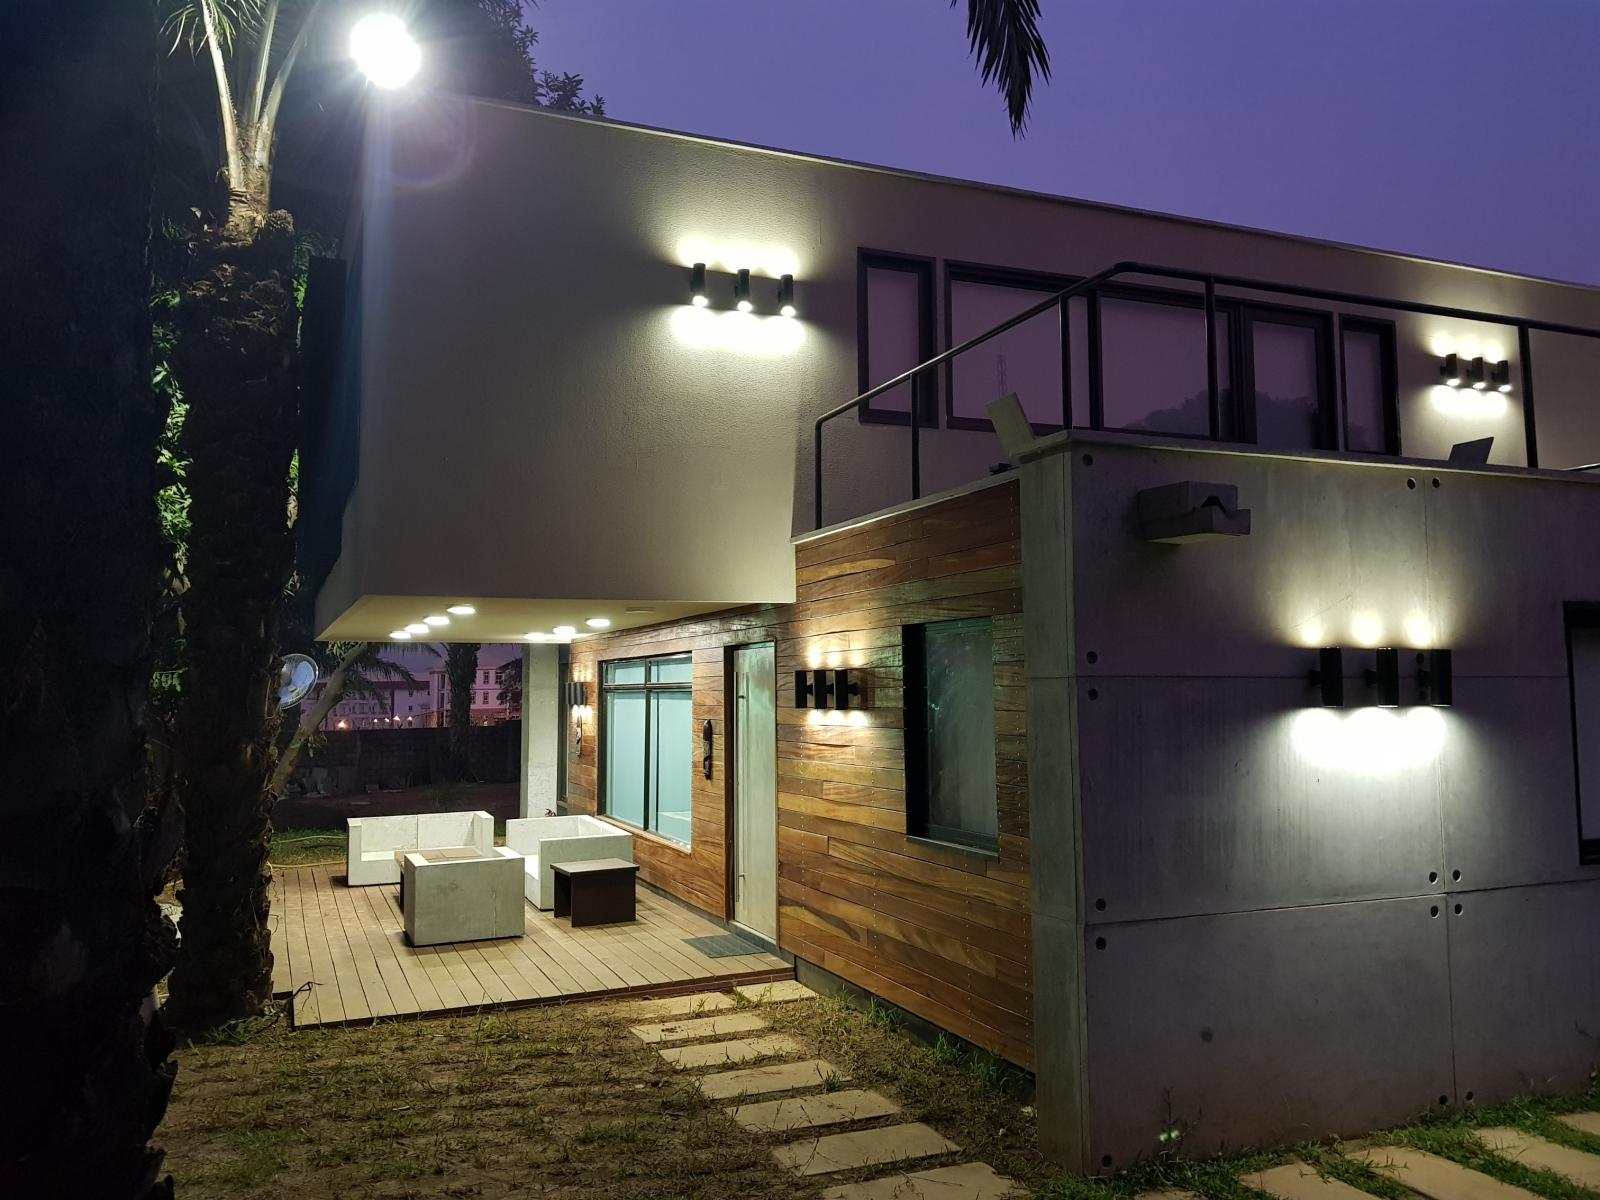 A residential project in Abuja built using shipping containers features an array of outdoor lighting.